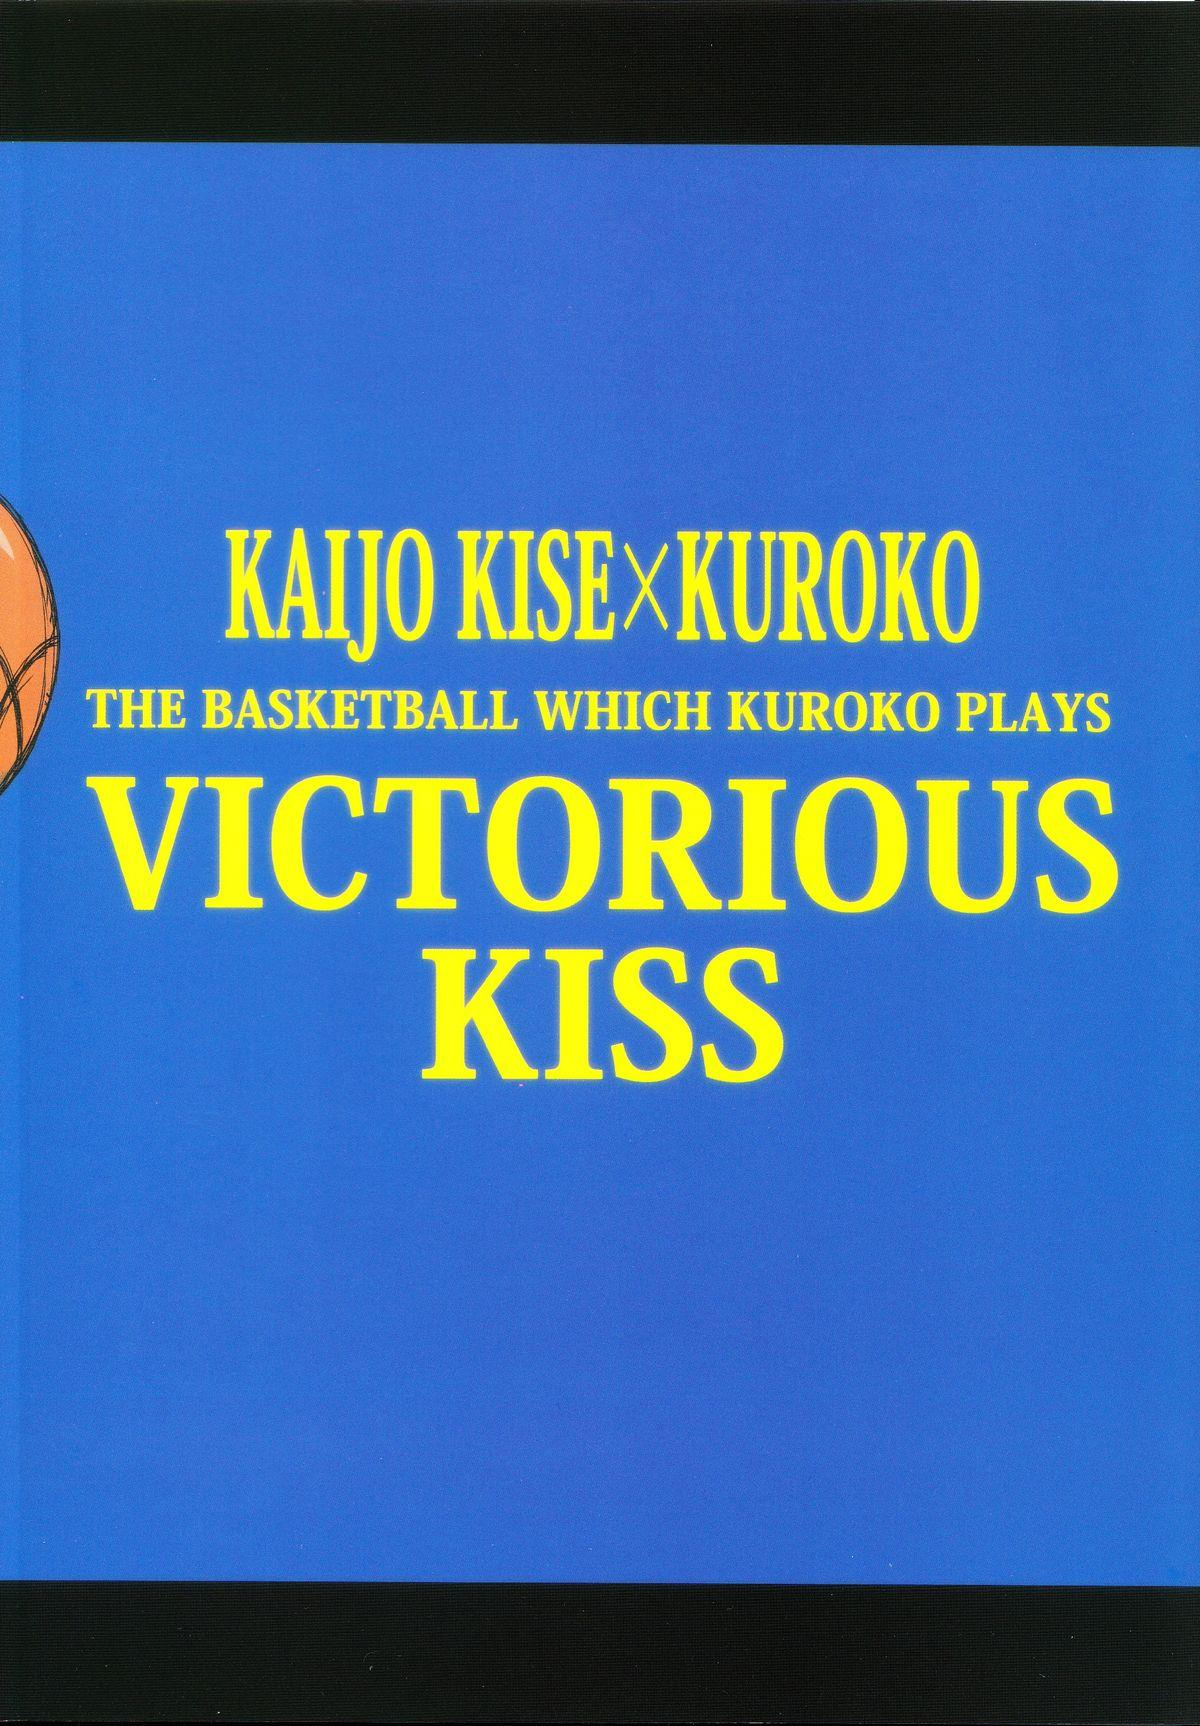 VICTORIOUS KISS 23